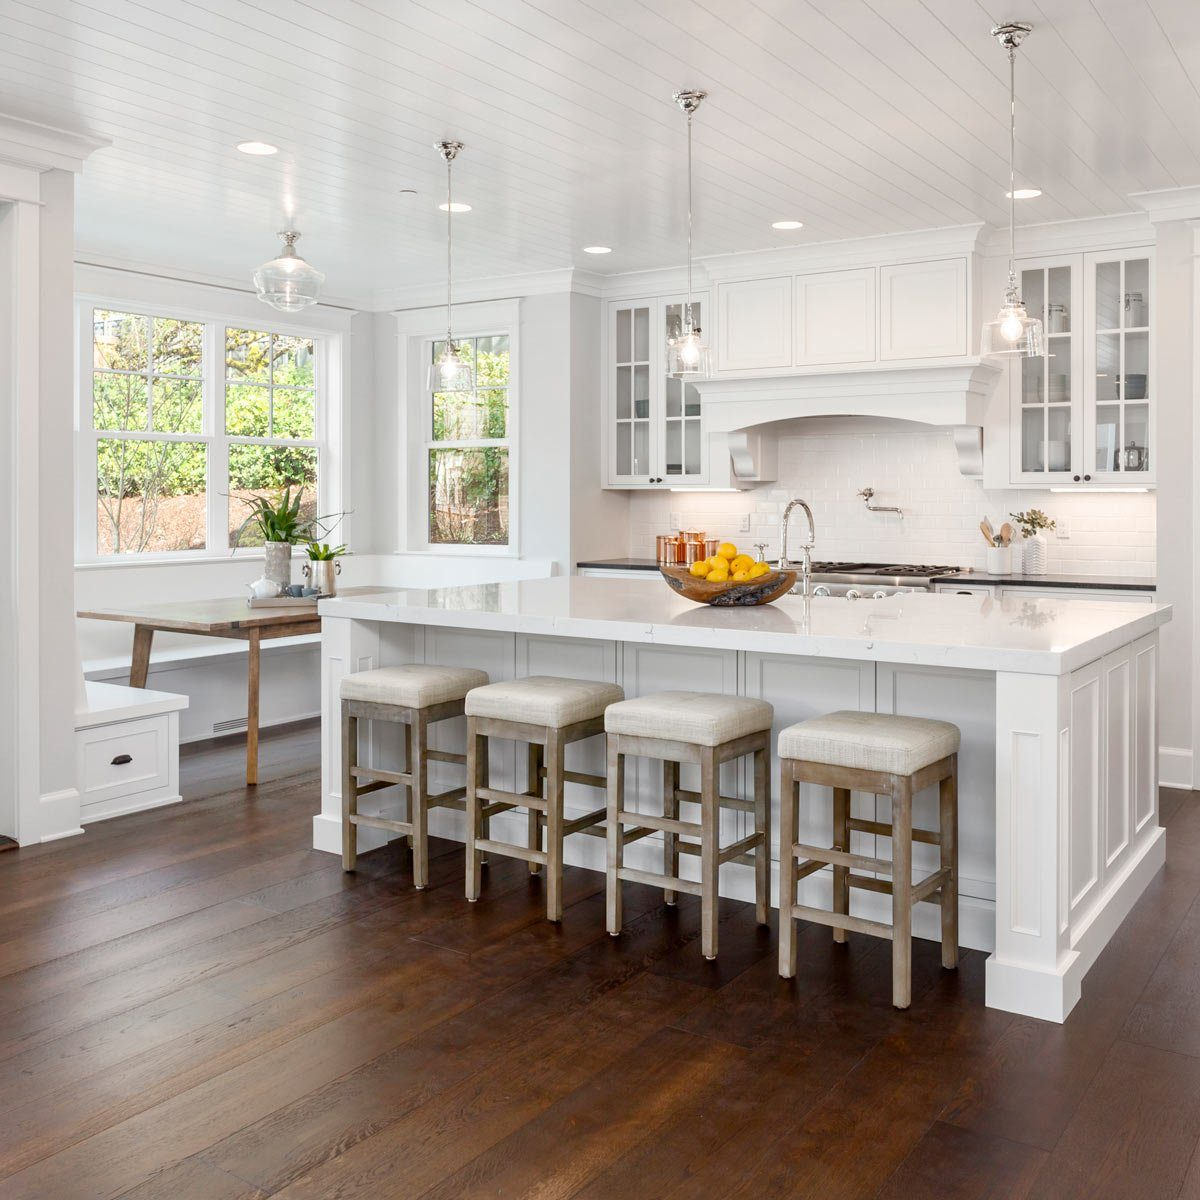 10 Things to Do After Your Home Remodel